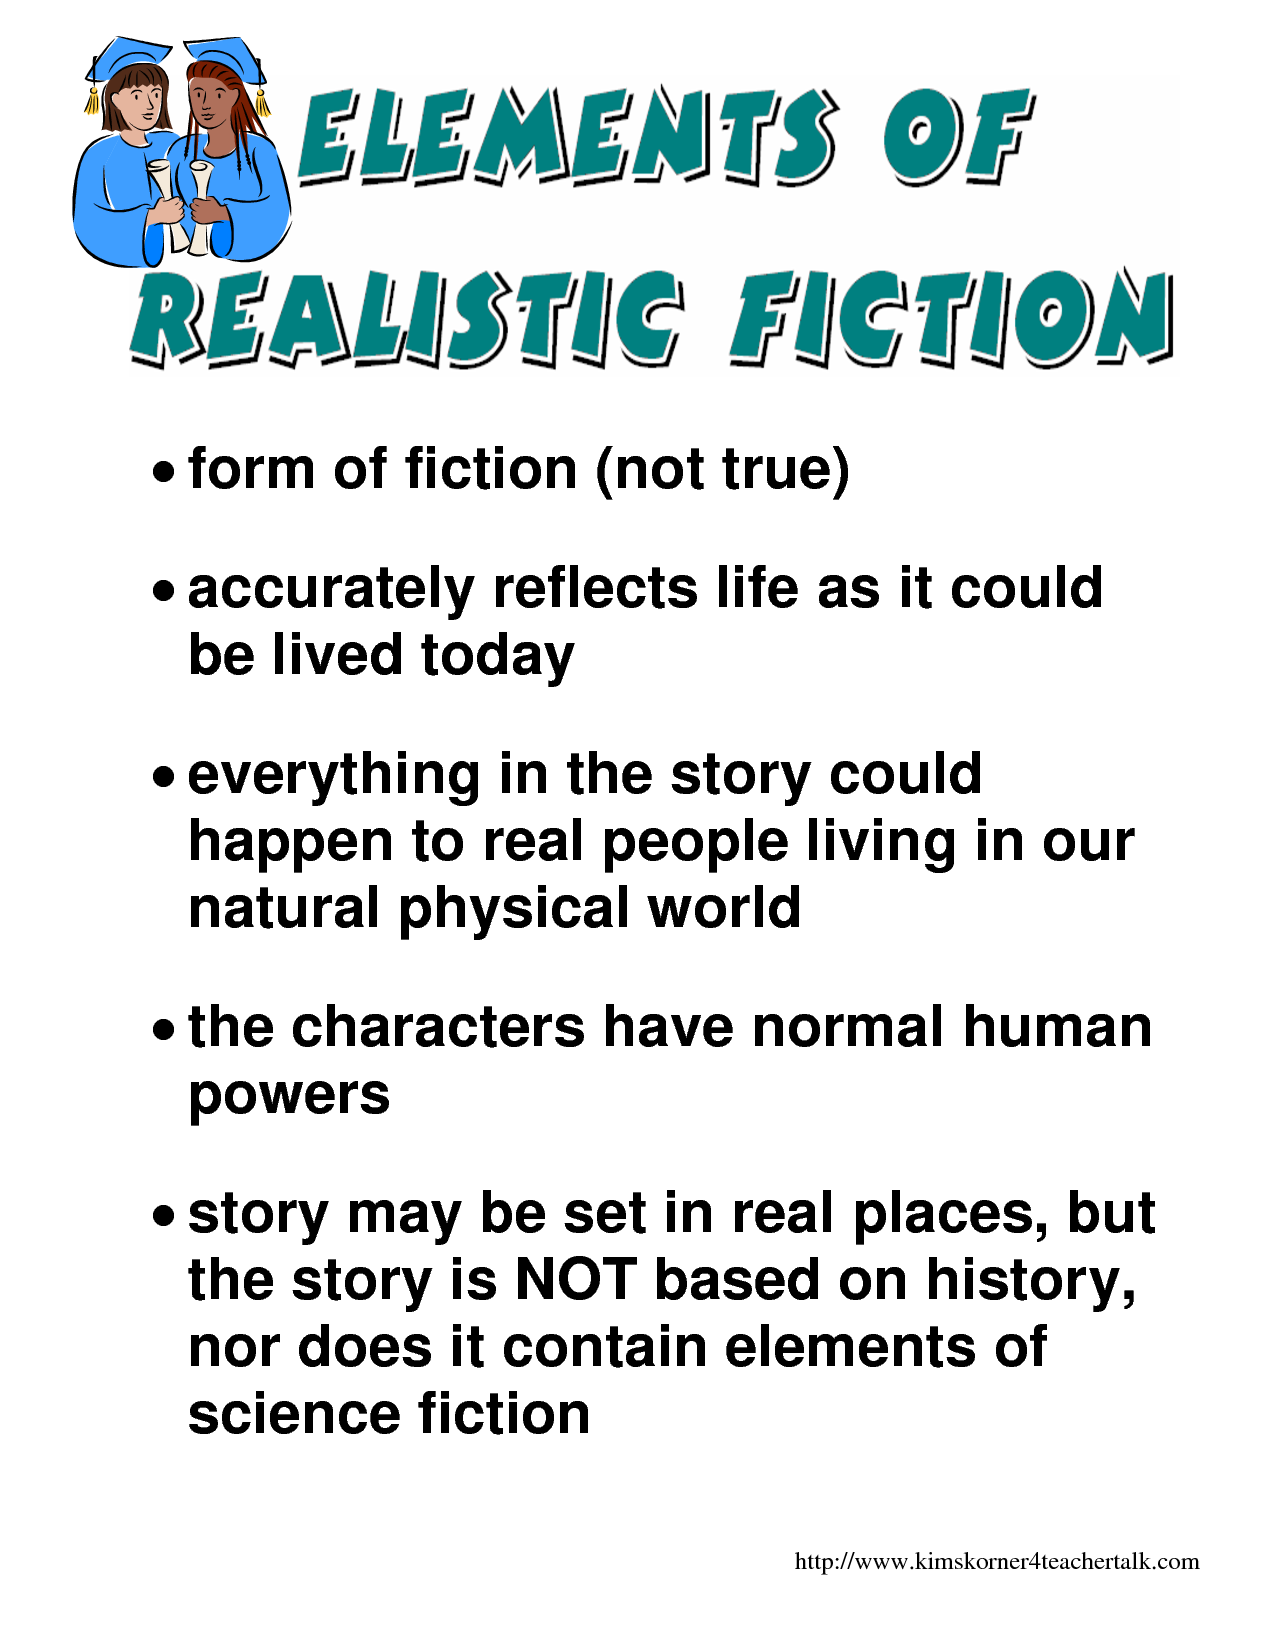 Elements Of Realistic Fiction